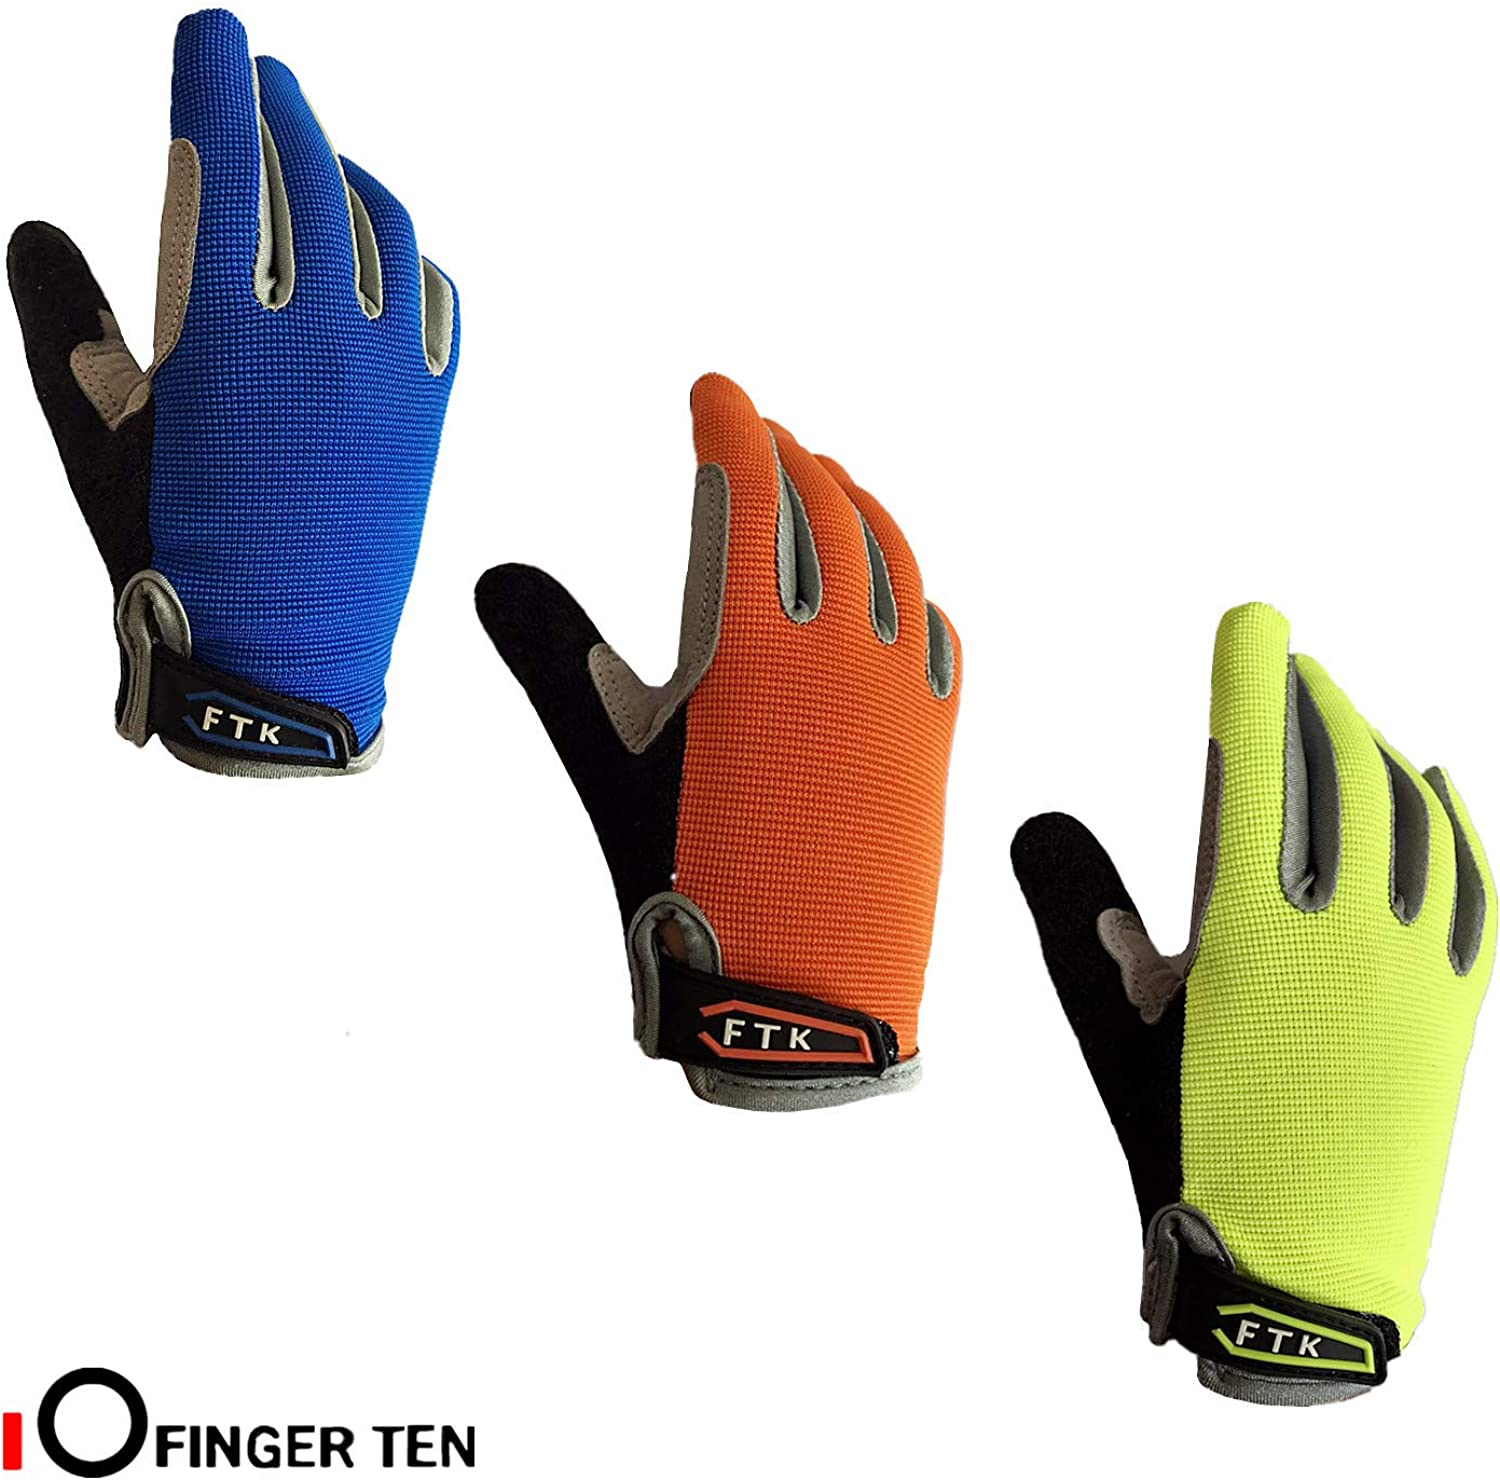 Color Blue Orange Age 2-11 Cycling Gloves Kids Boys Girls Youth Full Finger Pair Bike Riding Children Toddler Touch Screen Mountain Road Bicycle Warm Cold Weather Gel Padded